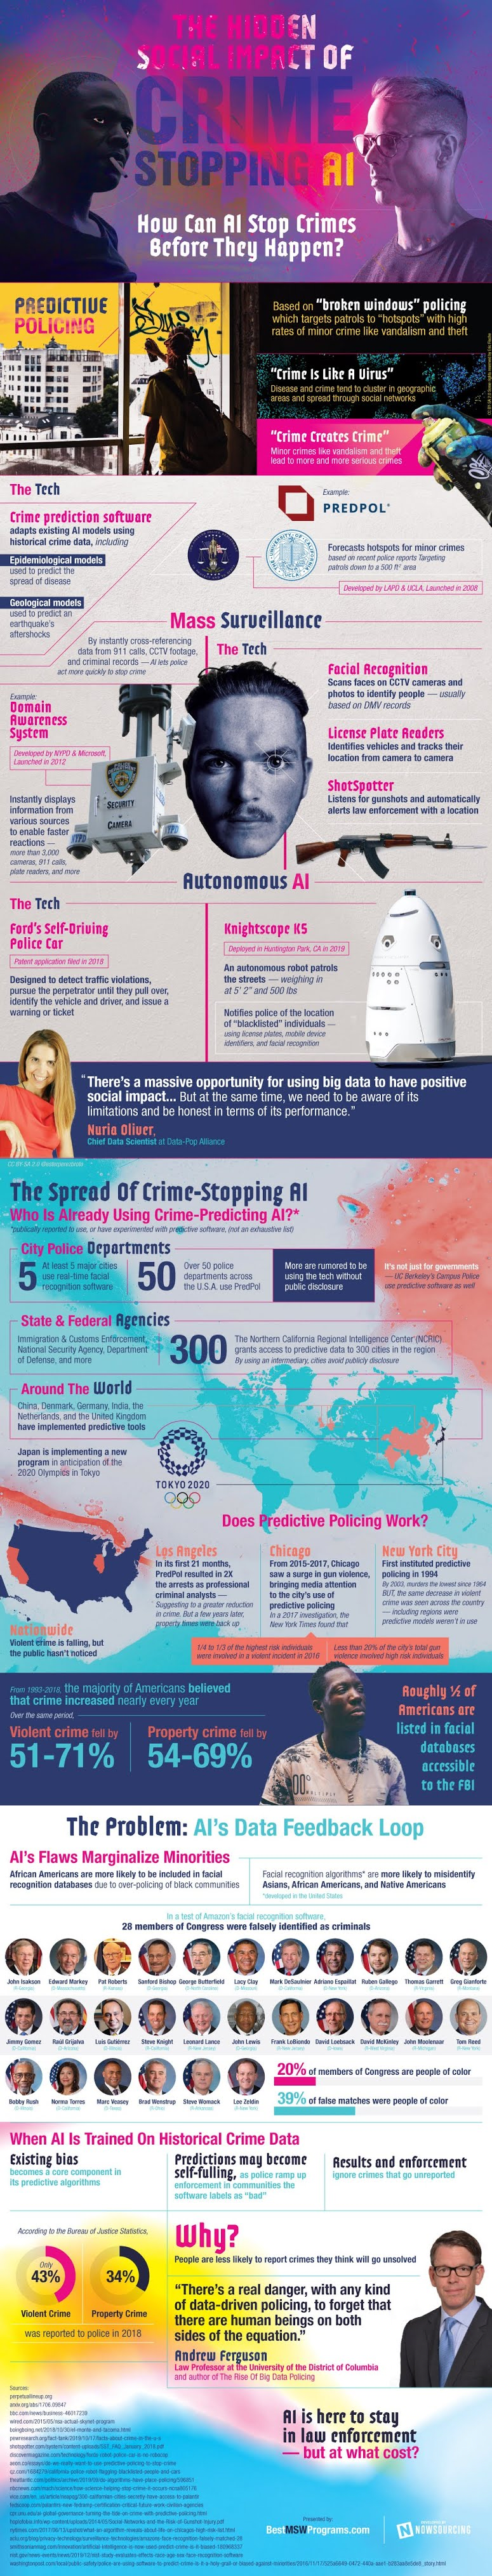 How Does Crime-Stopping AI Work? #infographic